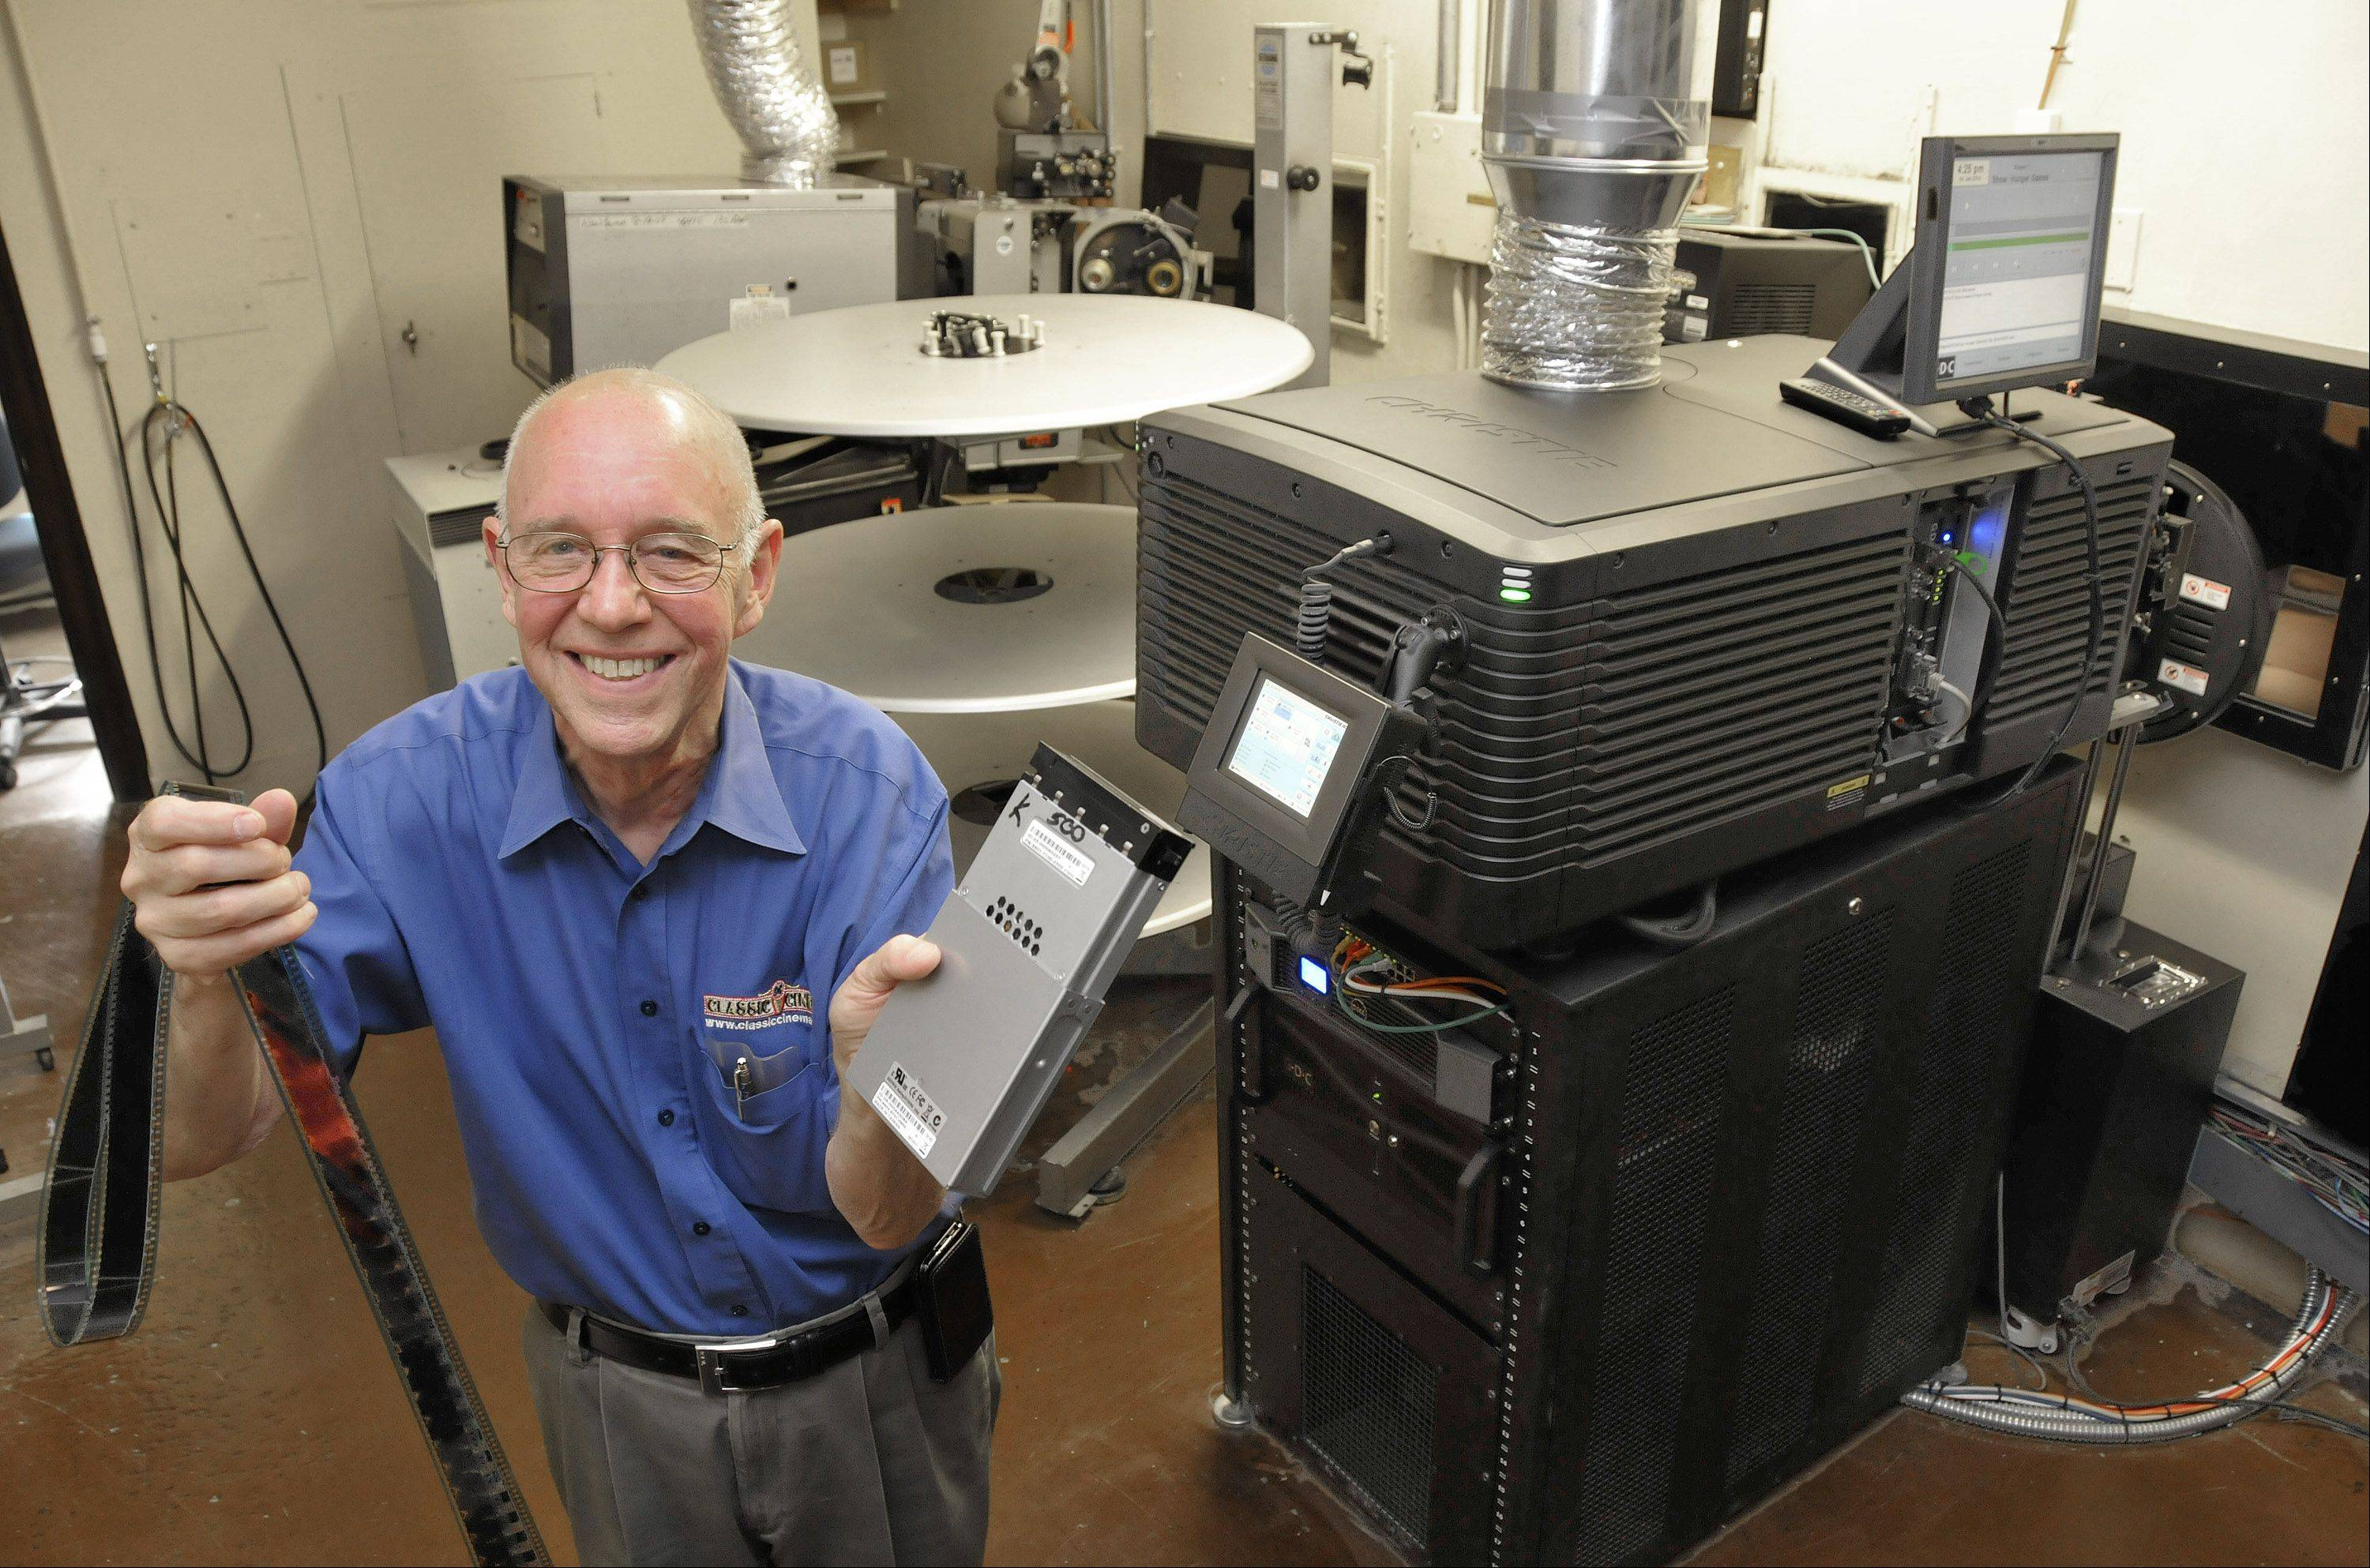 Owner Willis Johnson, in the projection booth at the Tivoli in Downers Grove, holds a traditional 35 mm movie film clip in his right hand and one of the hard drives in his left hand that the digital movies come in now. The hard drive goes in the computer-controlled projector and sound system, in the foreground.